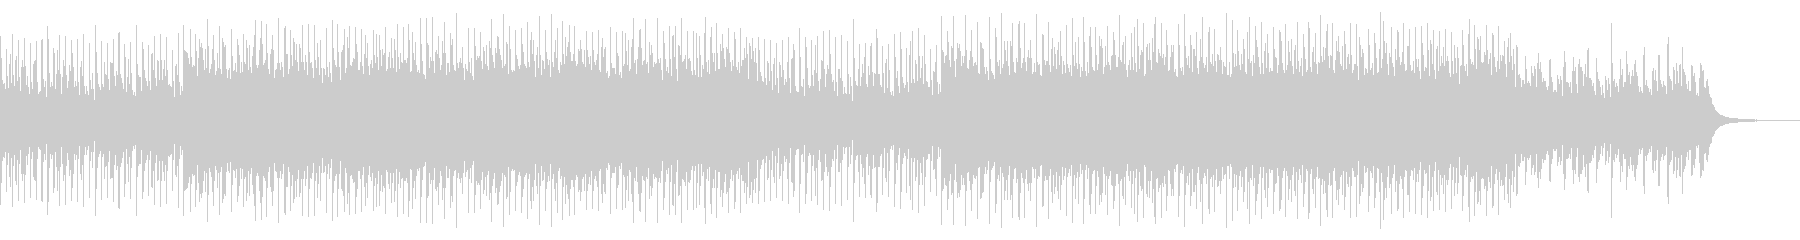 Corporate VP / CM The strength to live's unreproduced waveform